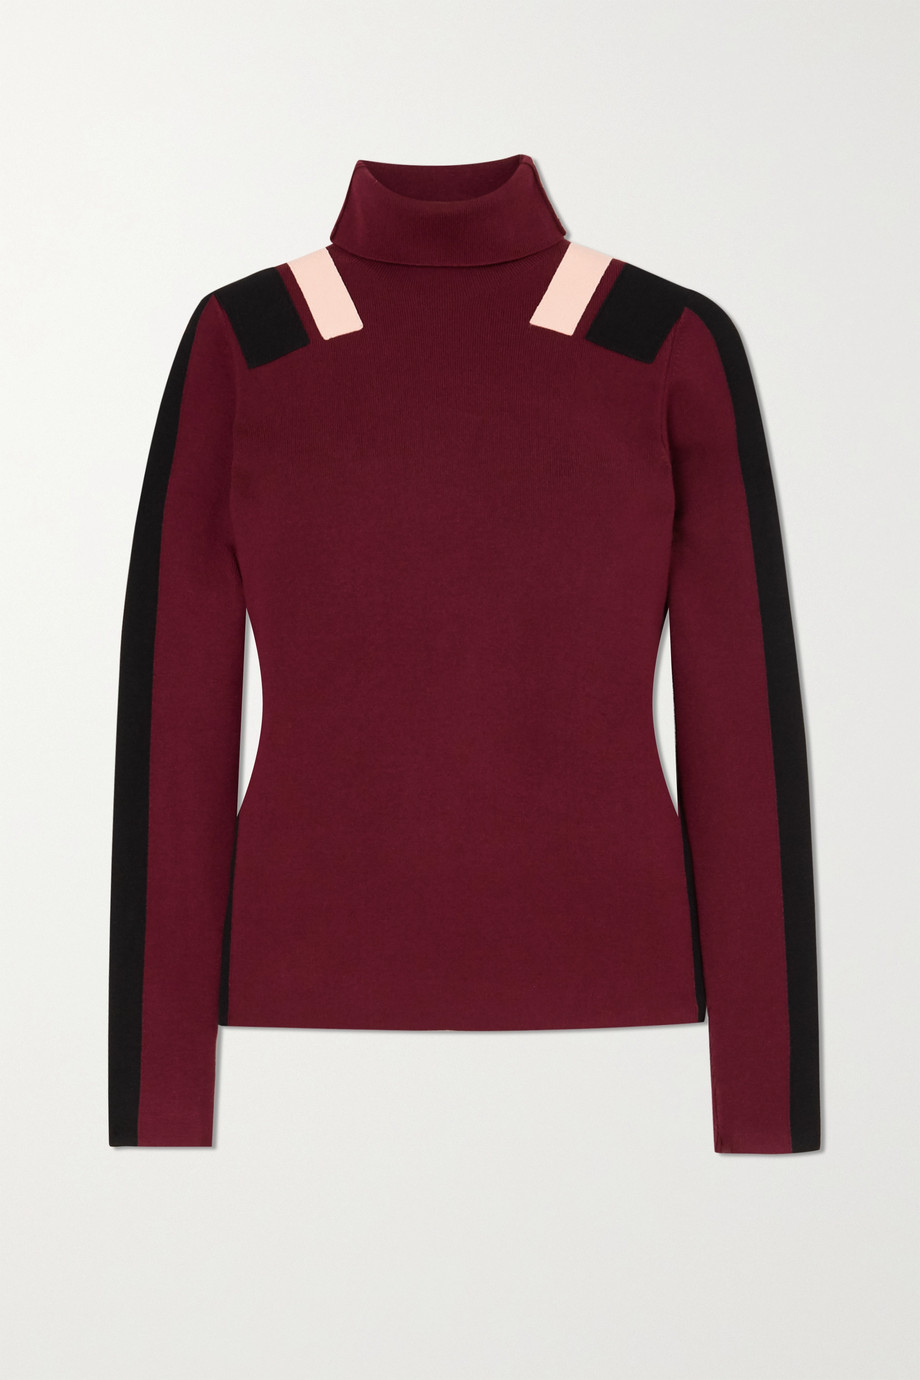 Victoria, Victoria Beckham Color-block knitted turtleneck sweater